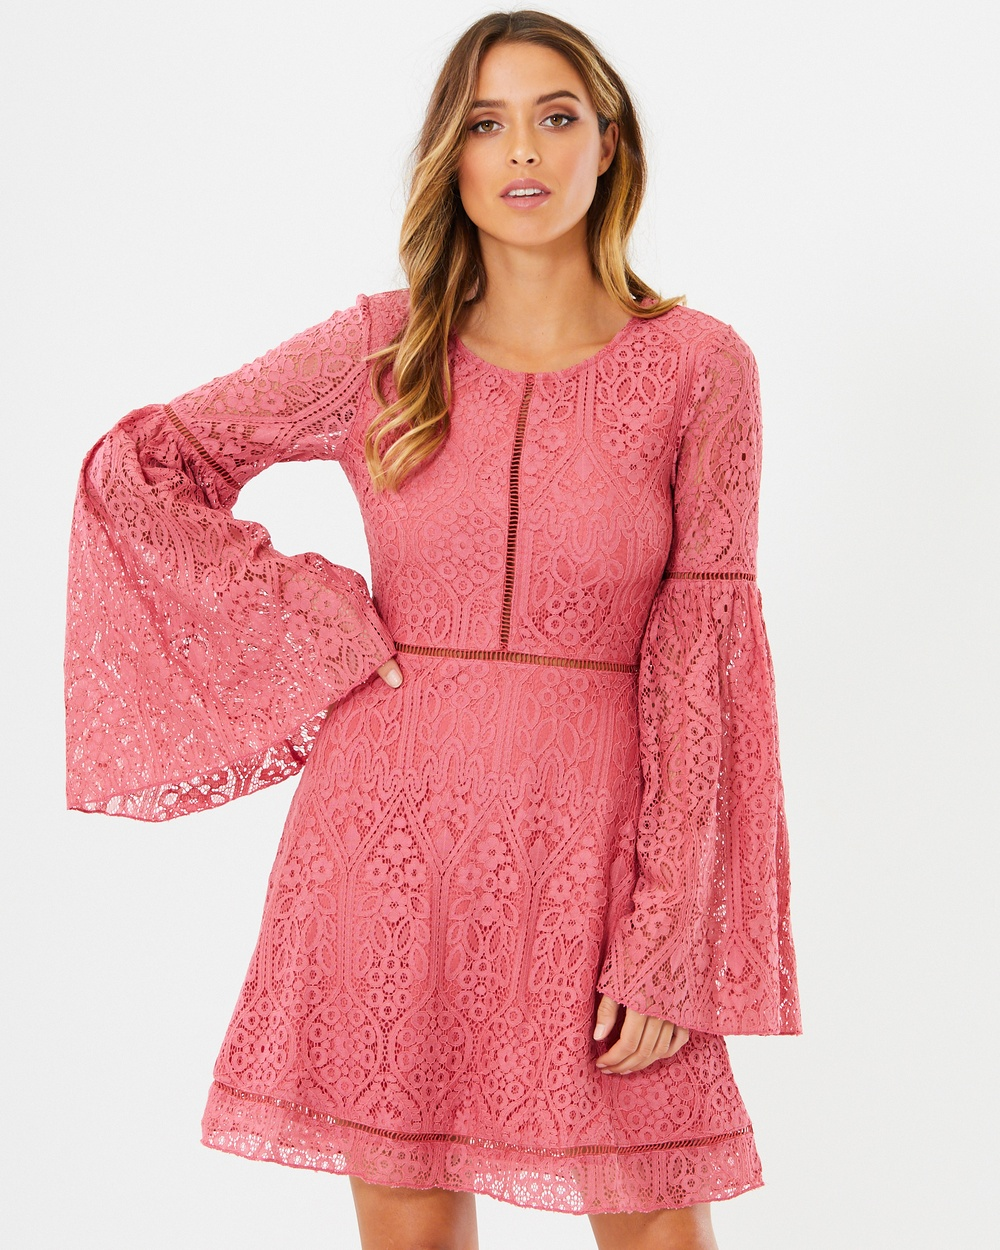 Calli Nina Dress Dresses Coral Pink Lace Nina Dress